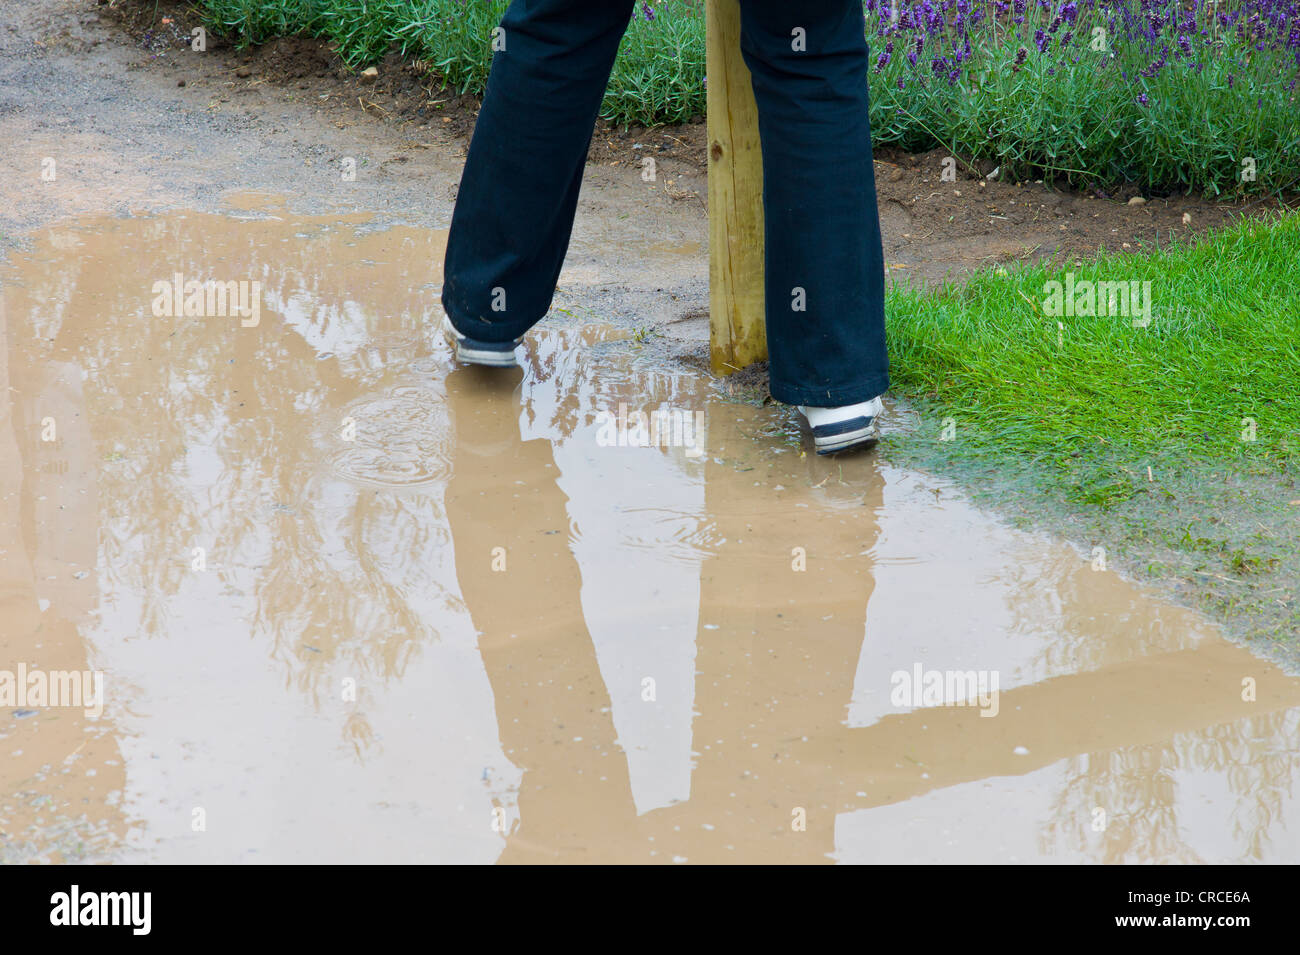 Avoiding the puddles at RHS Hampton Court Flower show 2011 - Stock Image